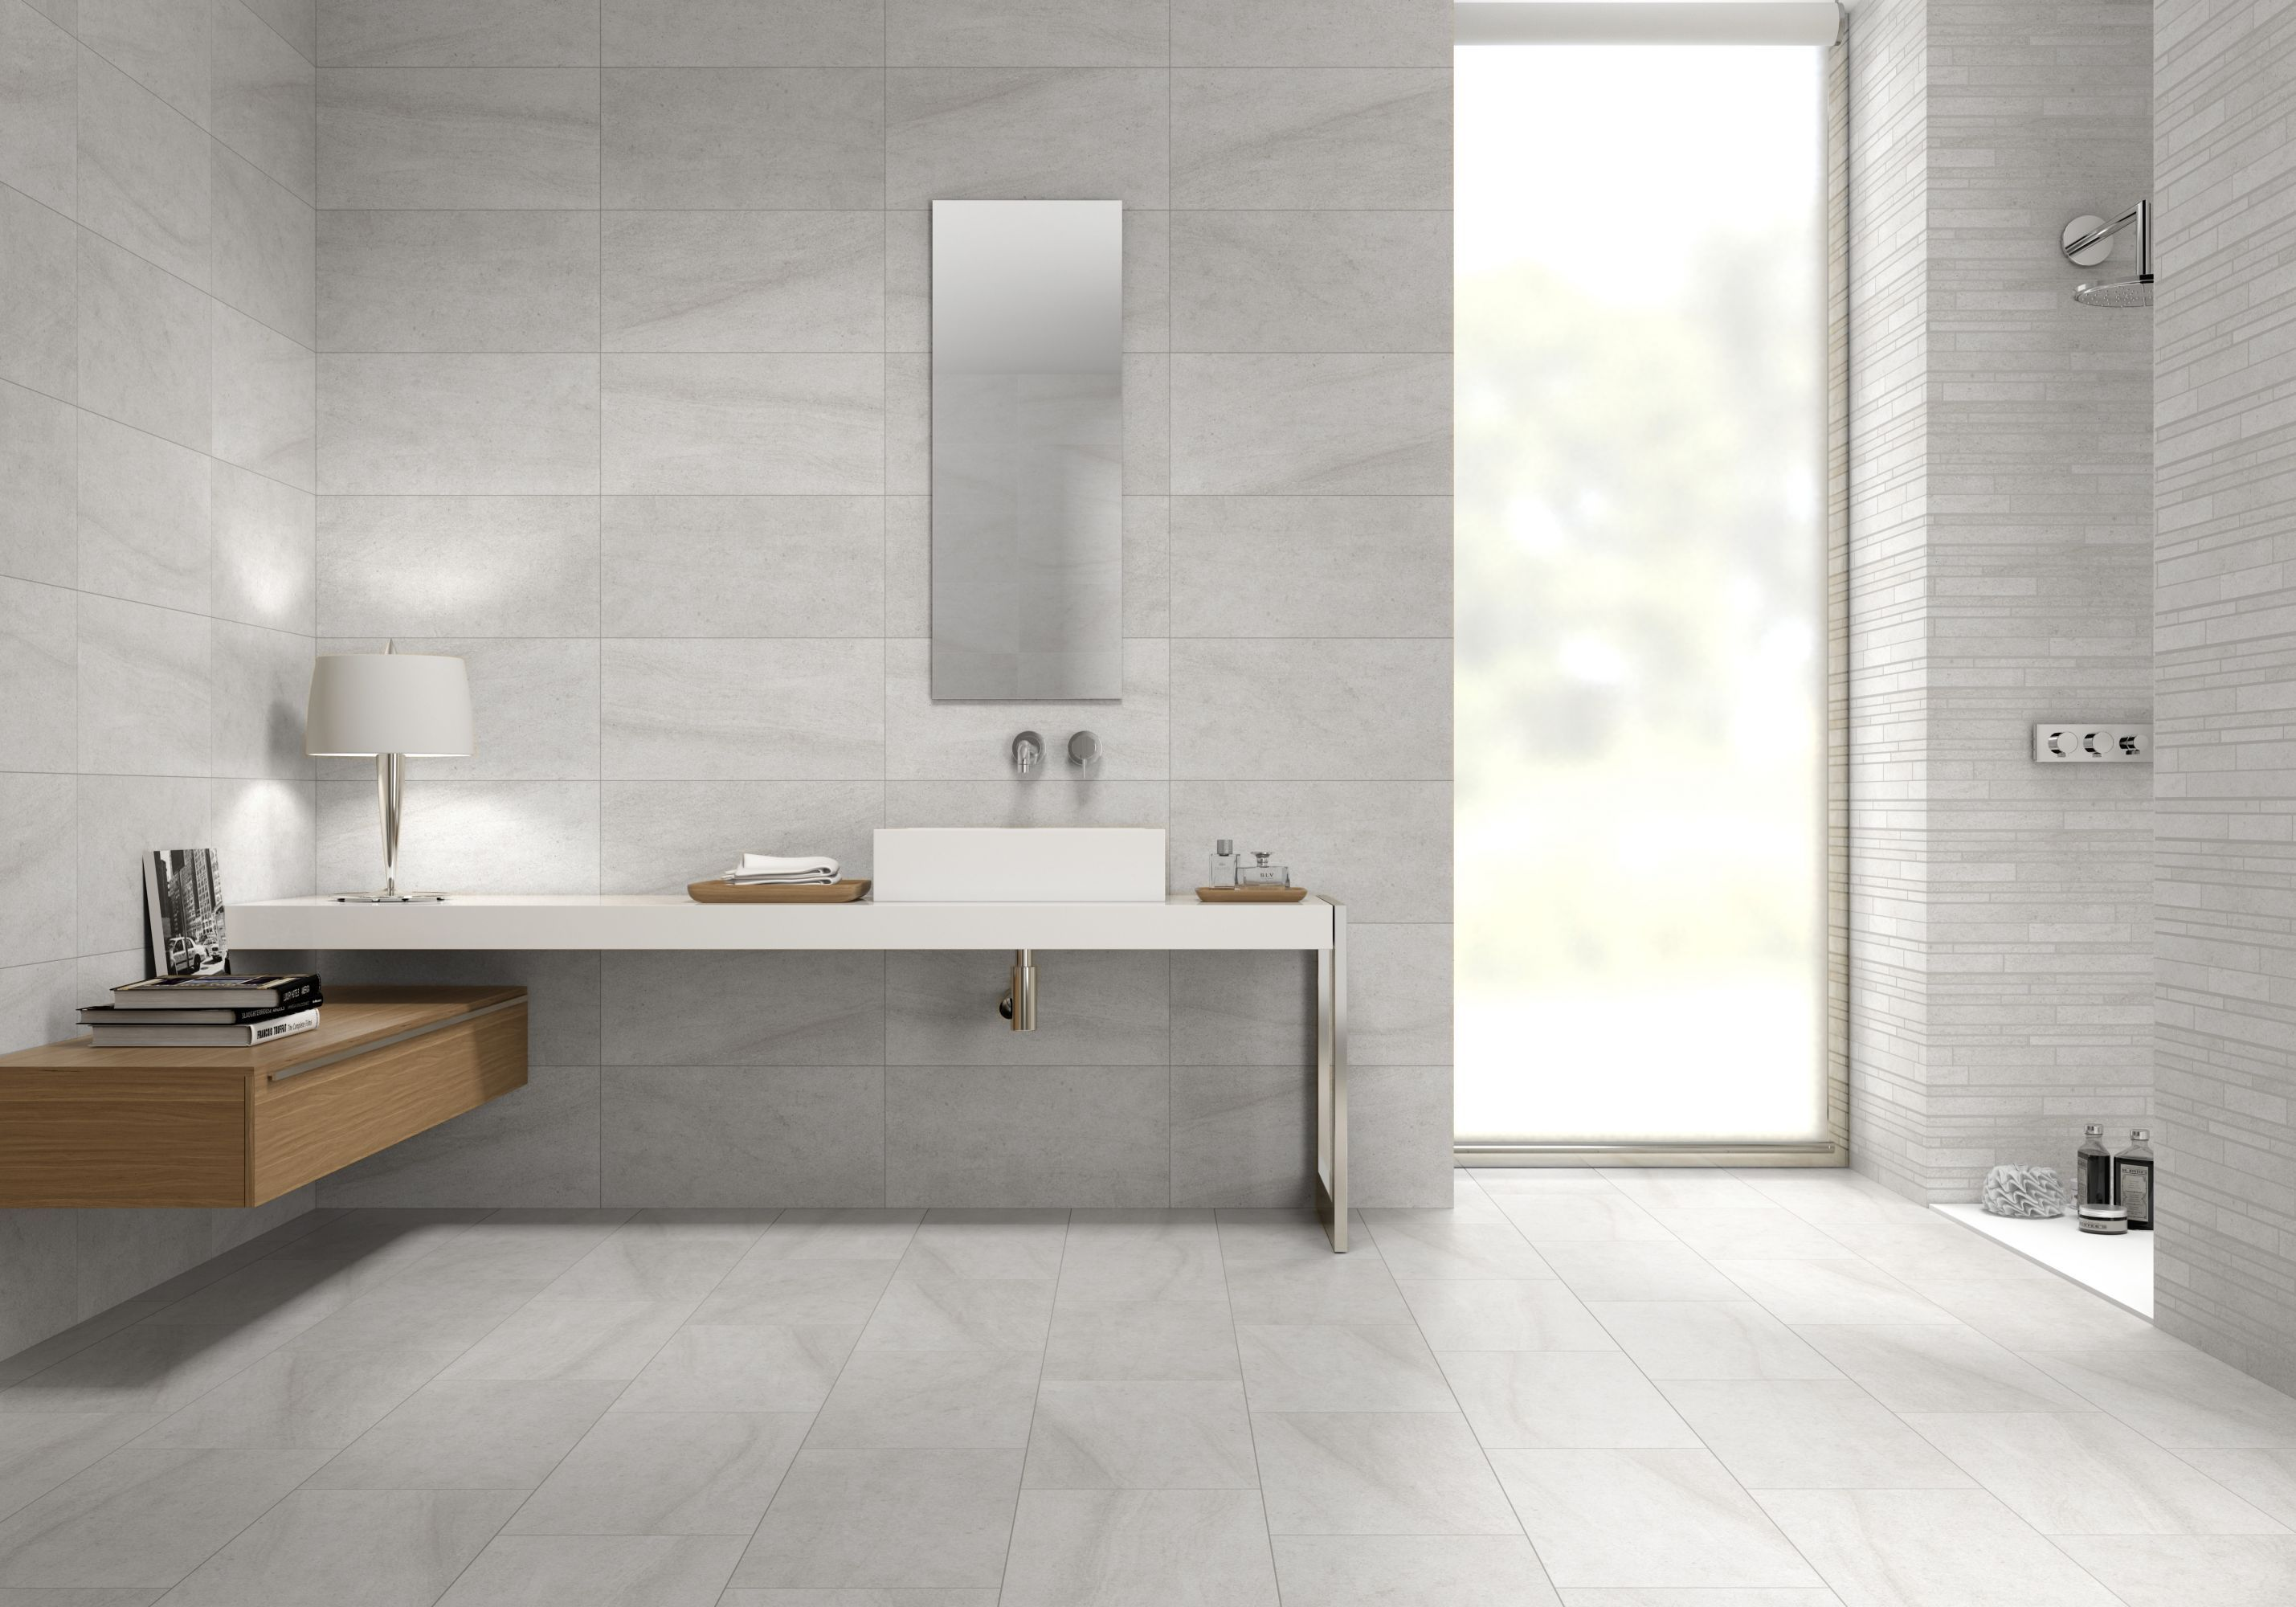 600 x 300 tile patterns google search bathrooms Bathroom wall and floor tiles ideas